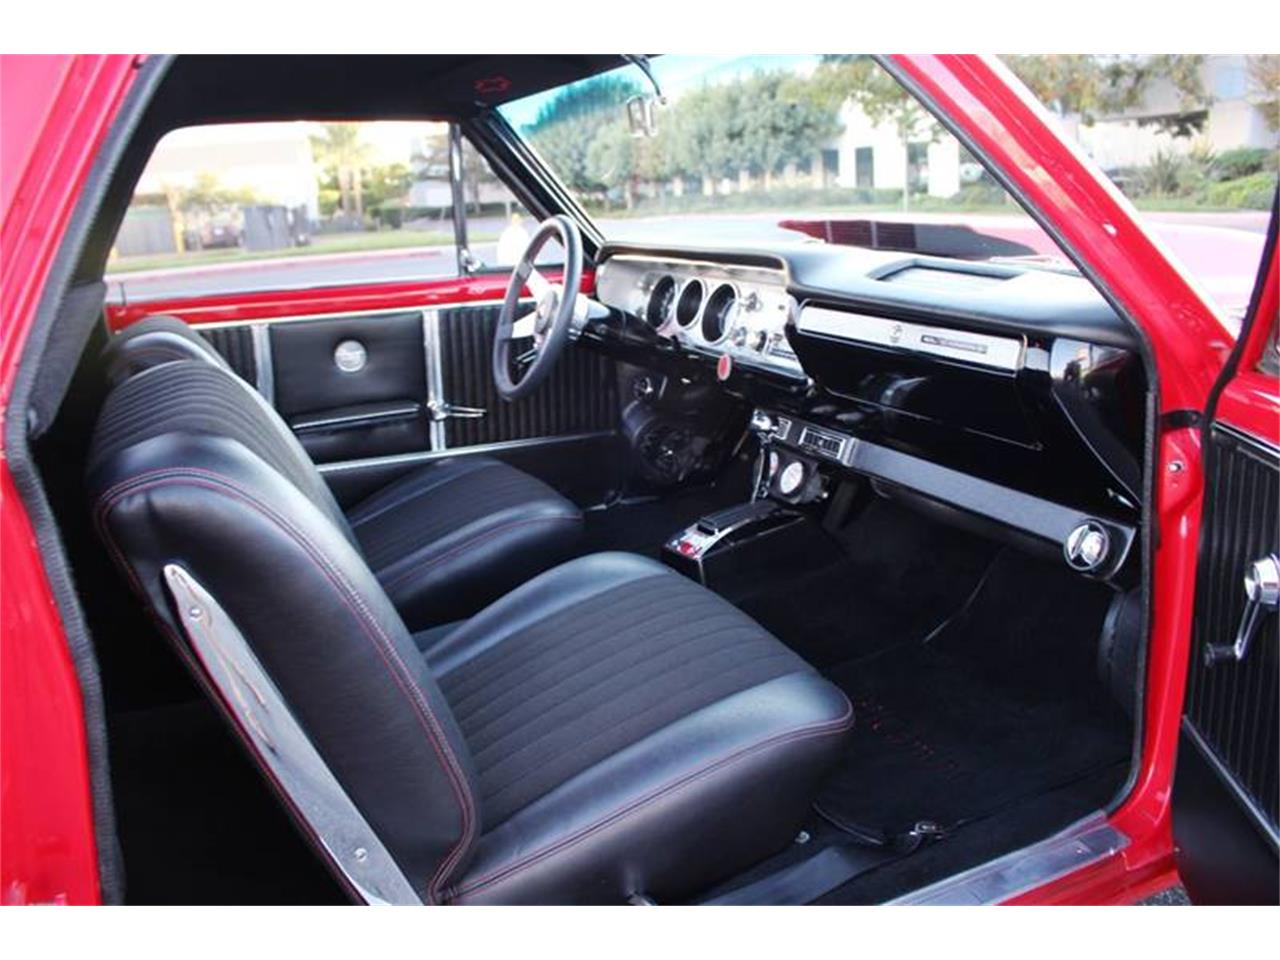 Large Picture of 1964 Chevrolet El Camino Offered by American Classic Cars - MH9D